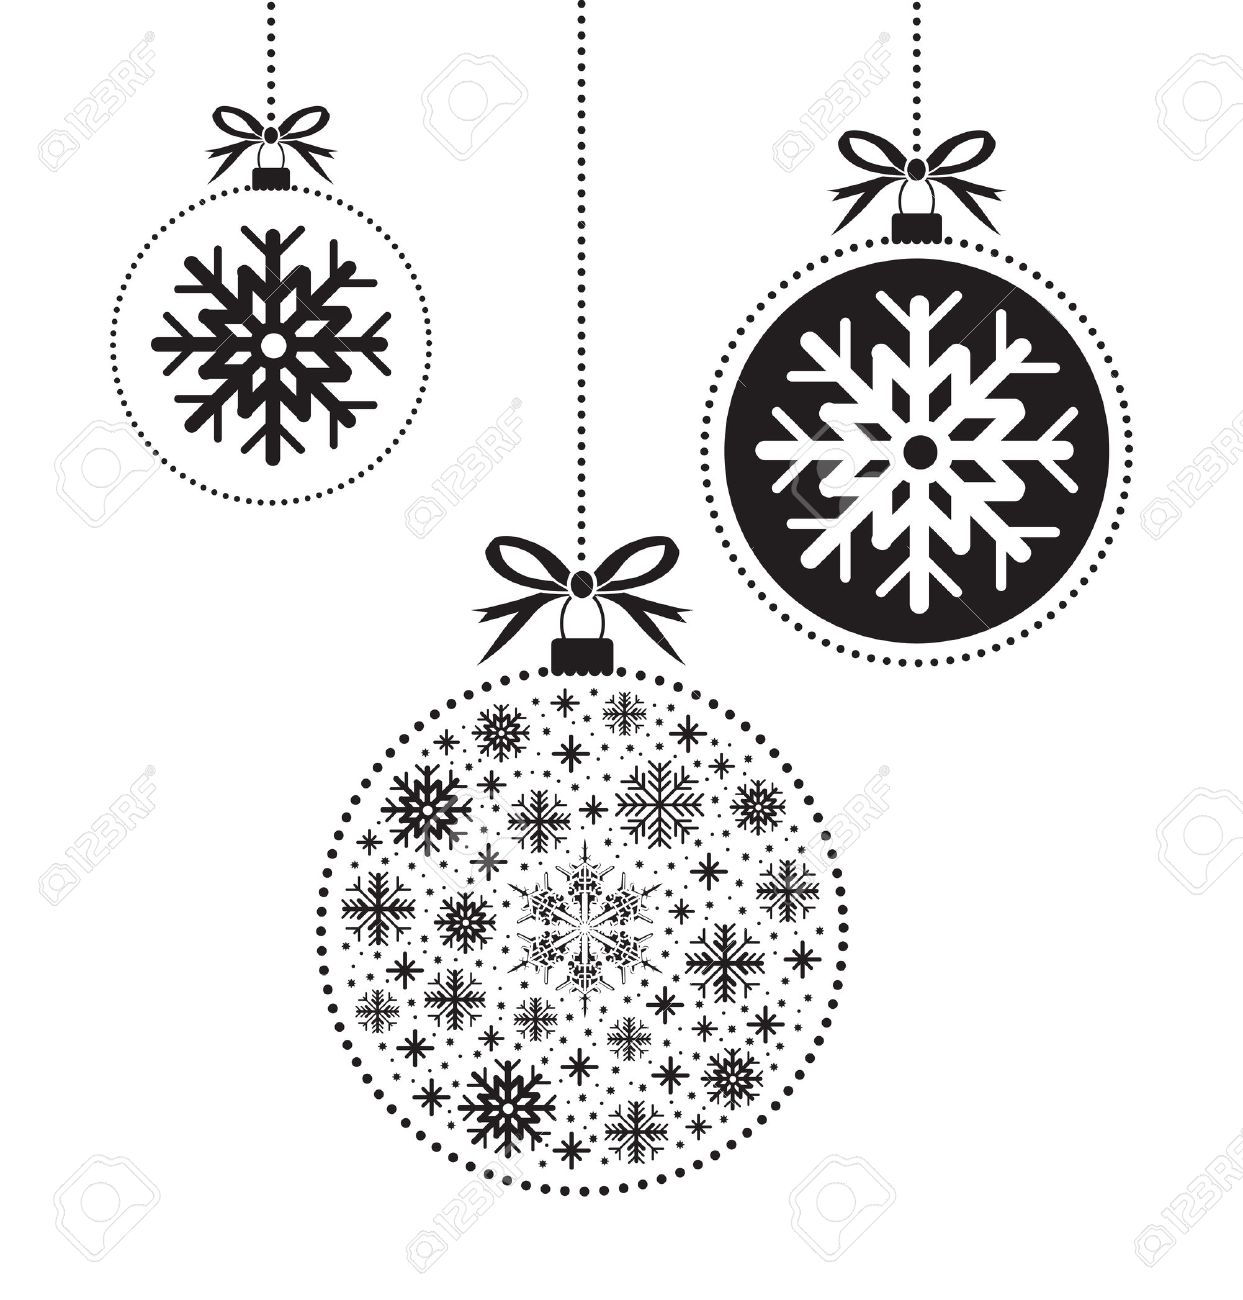 Christmas Balls Clipart Black And White.Christmas Balls Clipart Black And White 6 Clipart Station